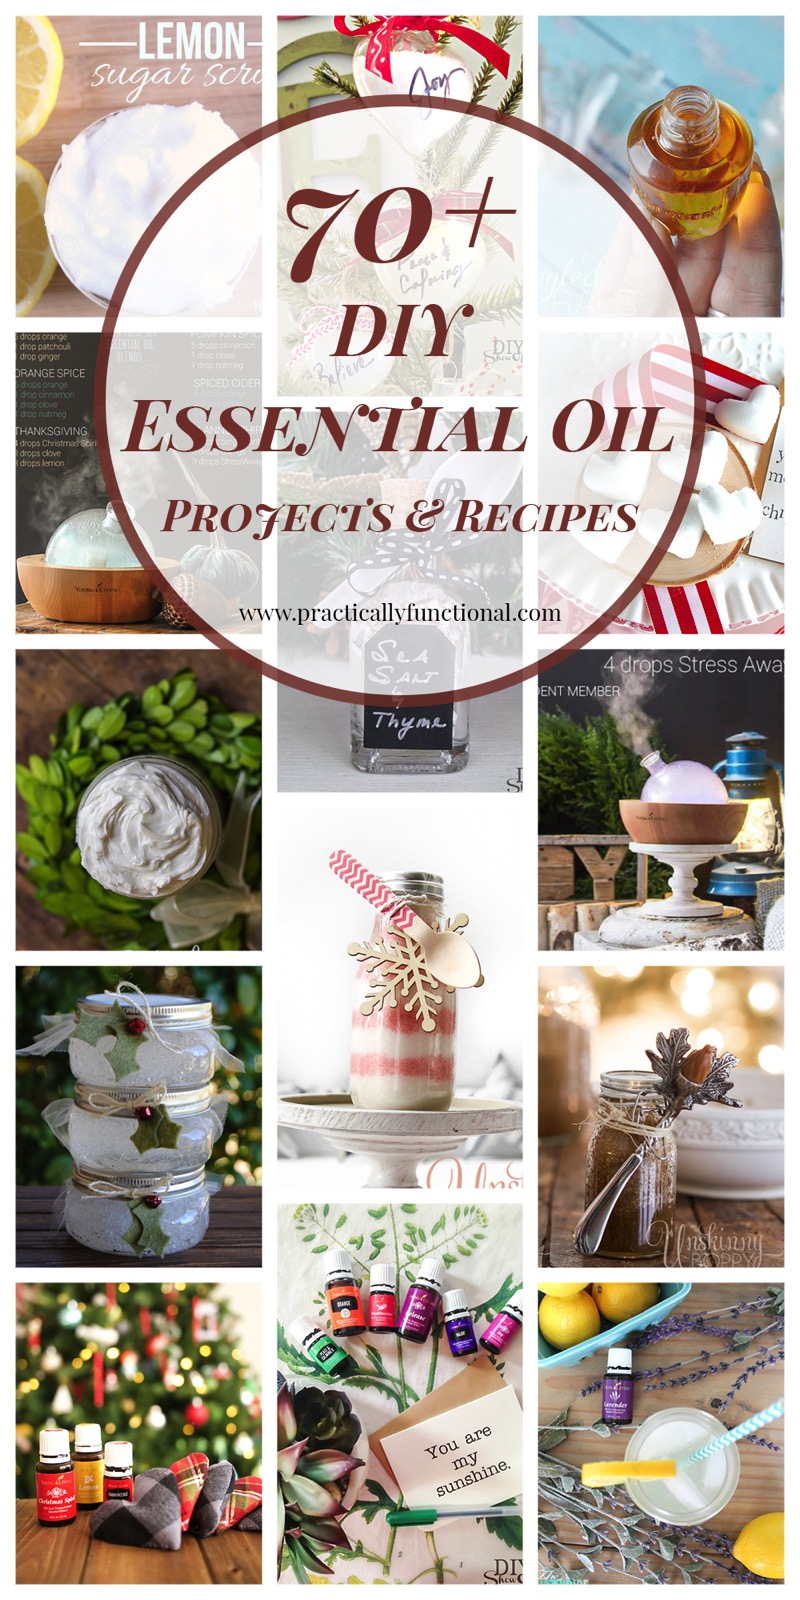 Over 70 DIY essential oil projects and recipes, great hostess gifts!